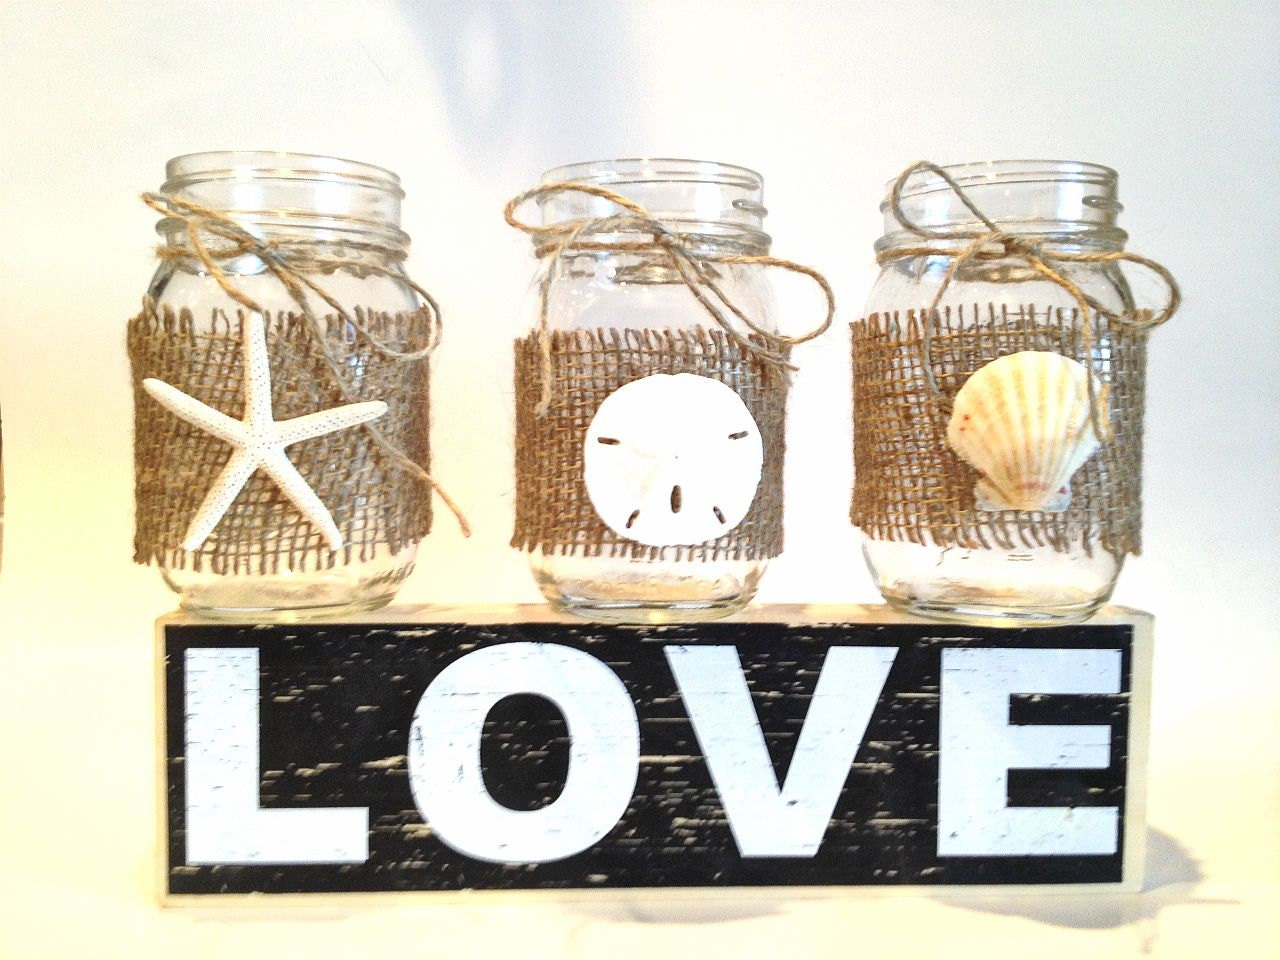 Set of 6 Mason jar centerpiece-candle holder beach wedding